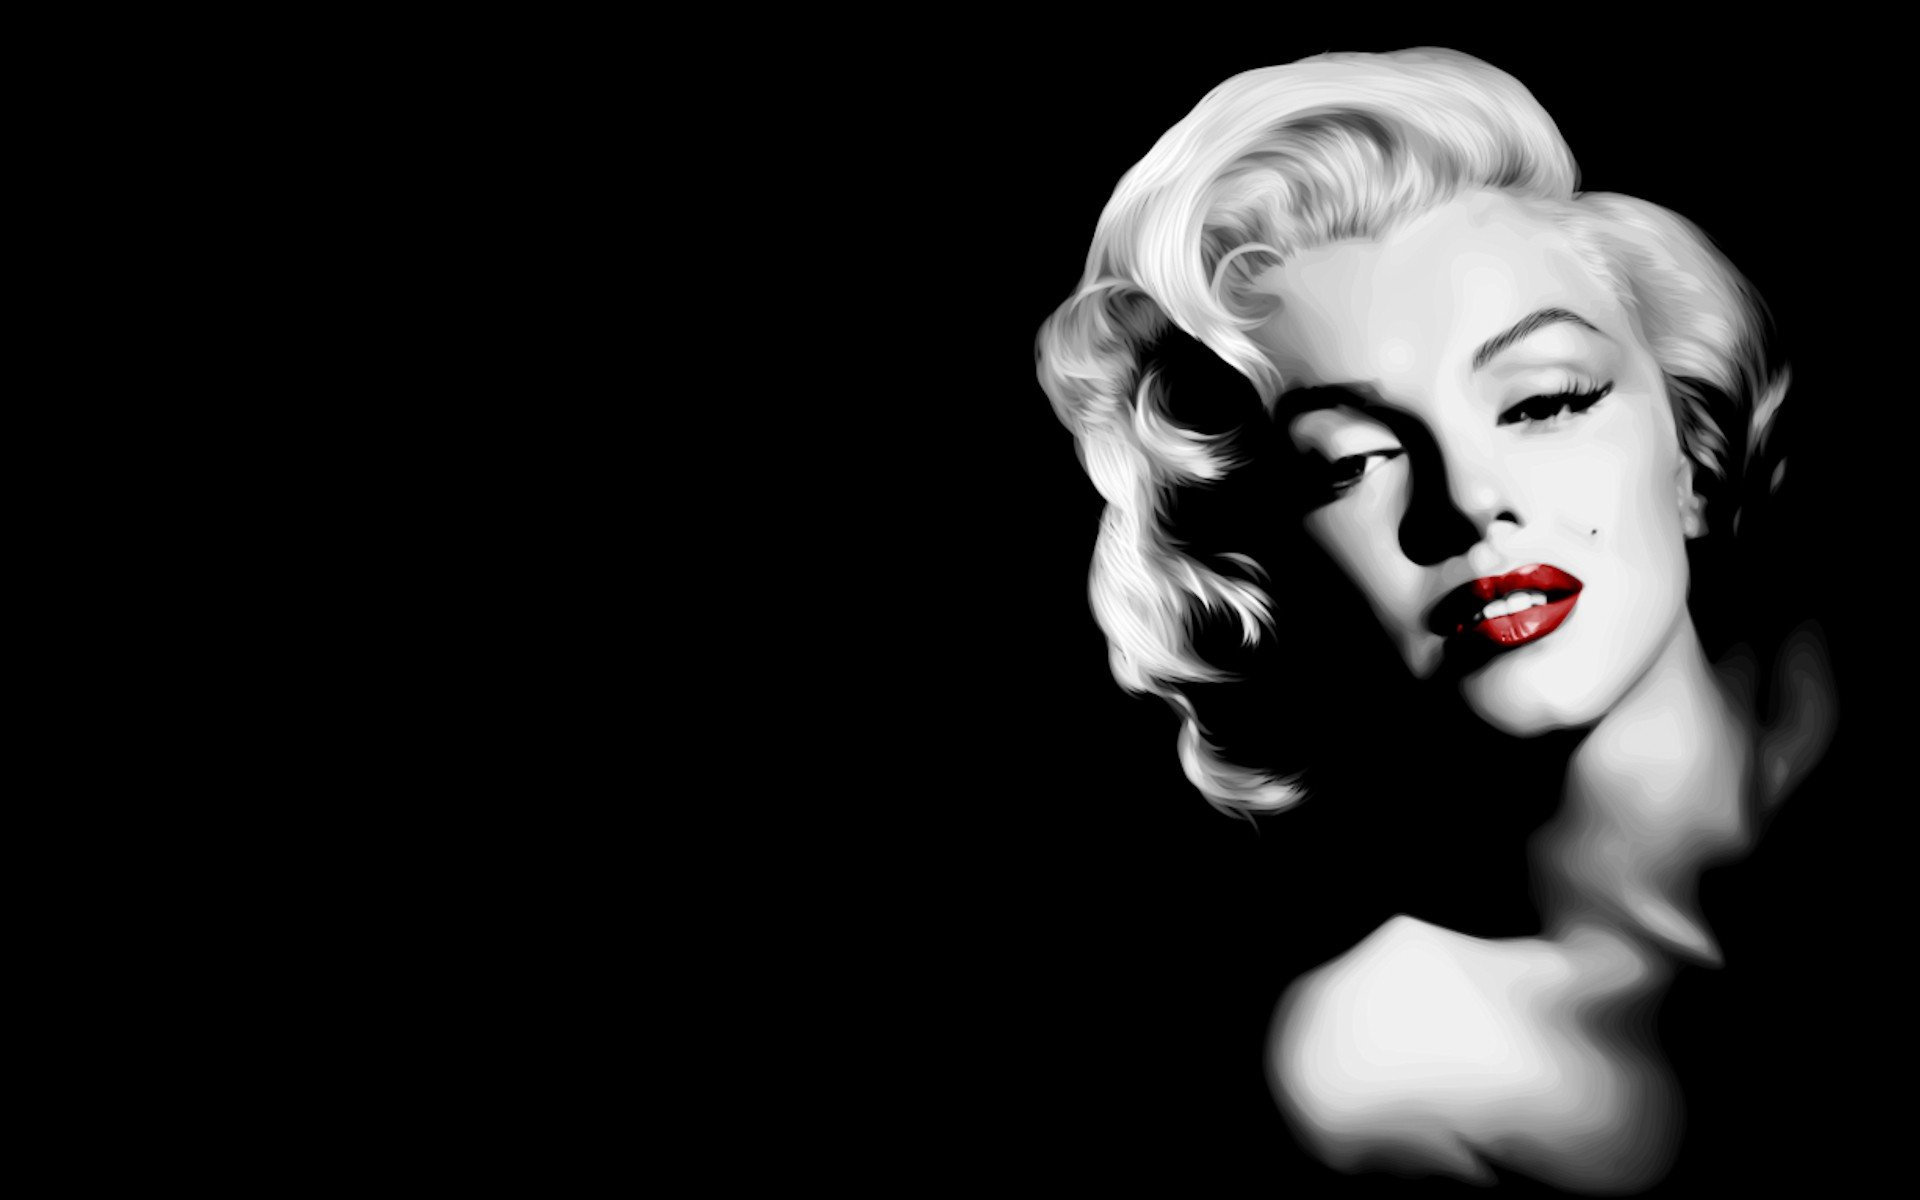 Download hd 1920x1200 Marilyn Monroe PC wallpaper ID:119459 for free